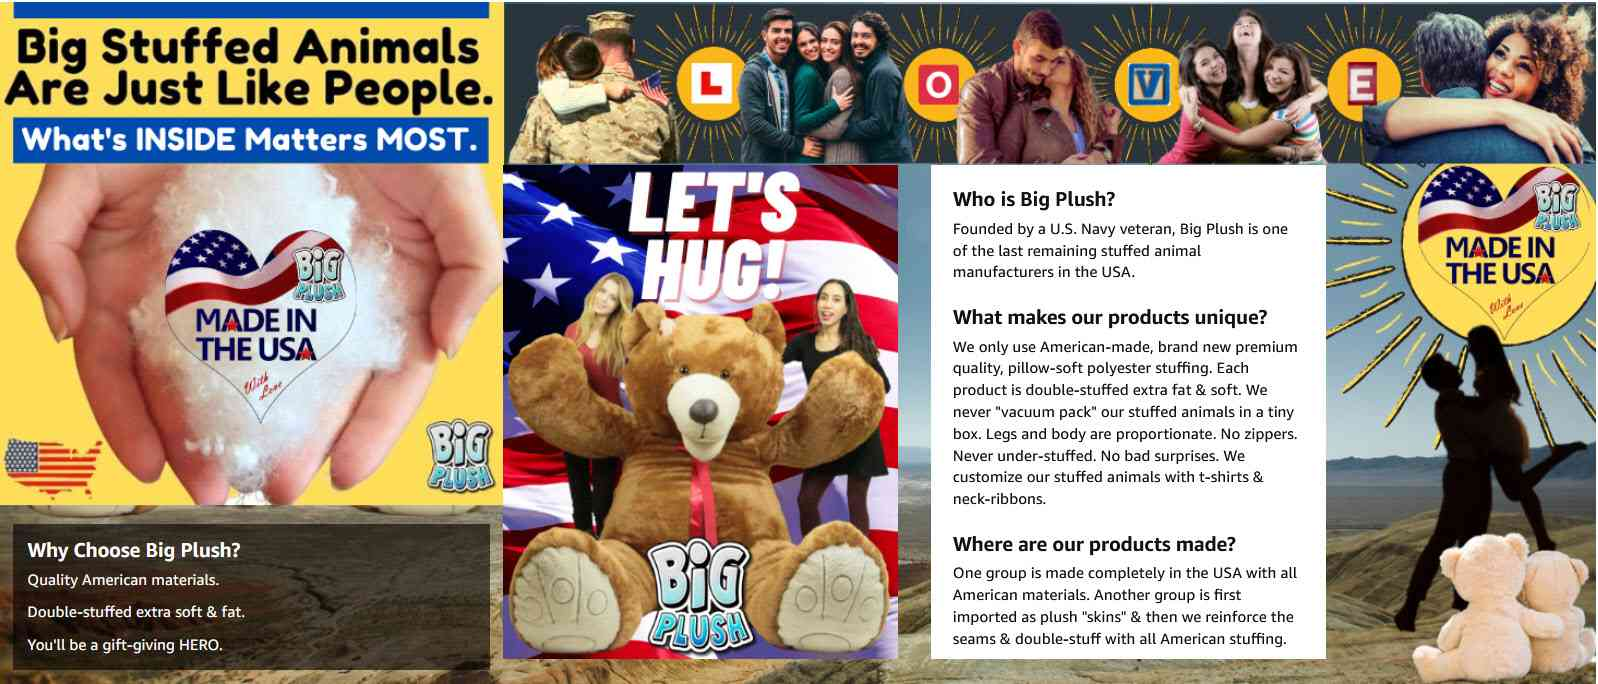 Big Plush About Us - Who is Big Plush? What's so special about the Big Plush brand? All American materials and made with love in the USA. Find Out More.